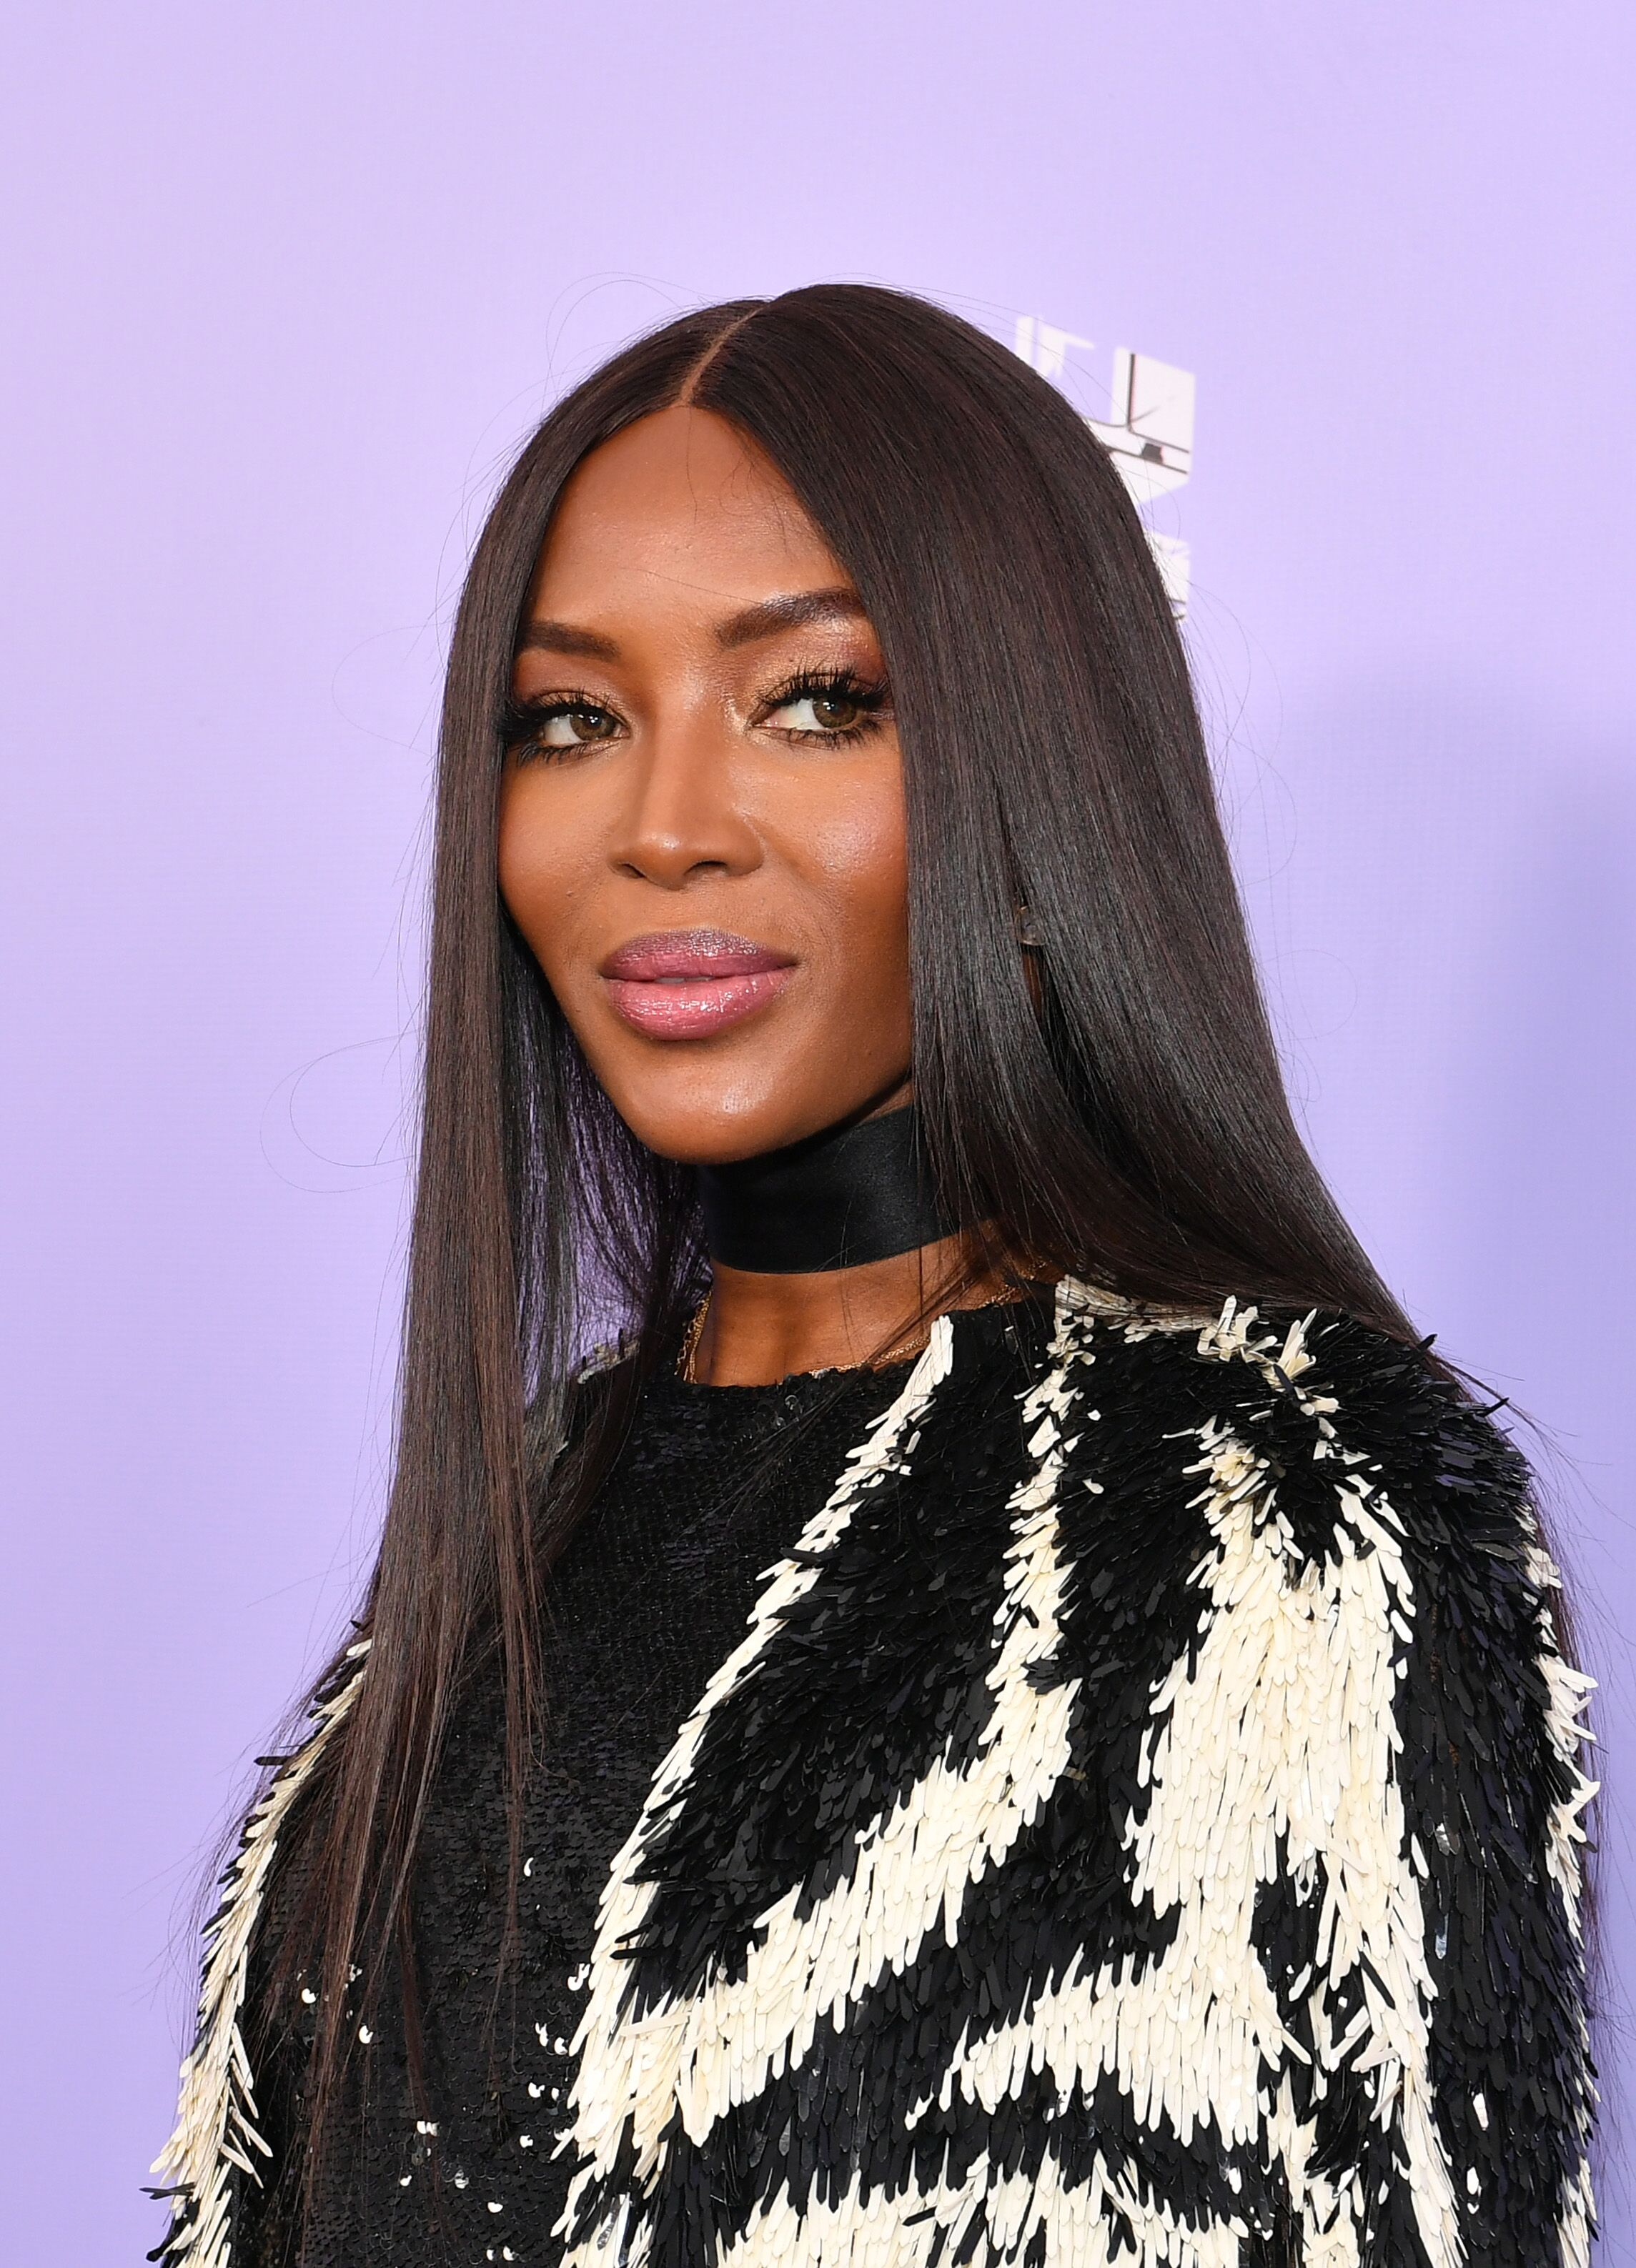 Naomi Campbell attends the Fragrance Foundation Awards on June 12, 2018 in New York City | Photo: Getty Images